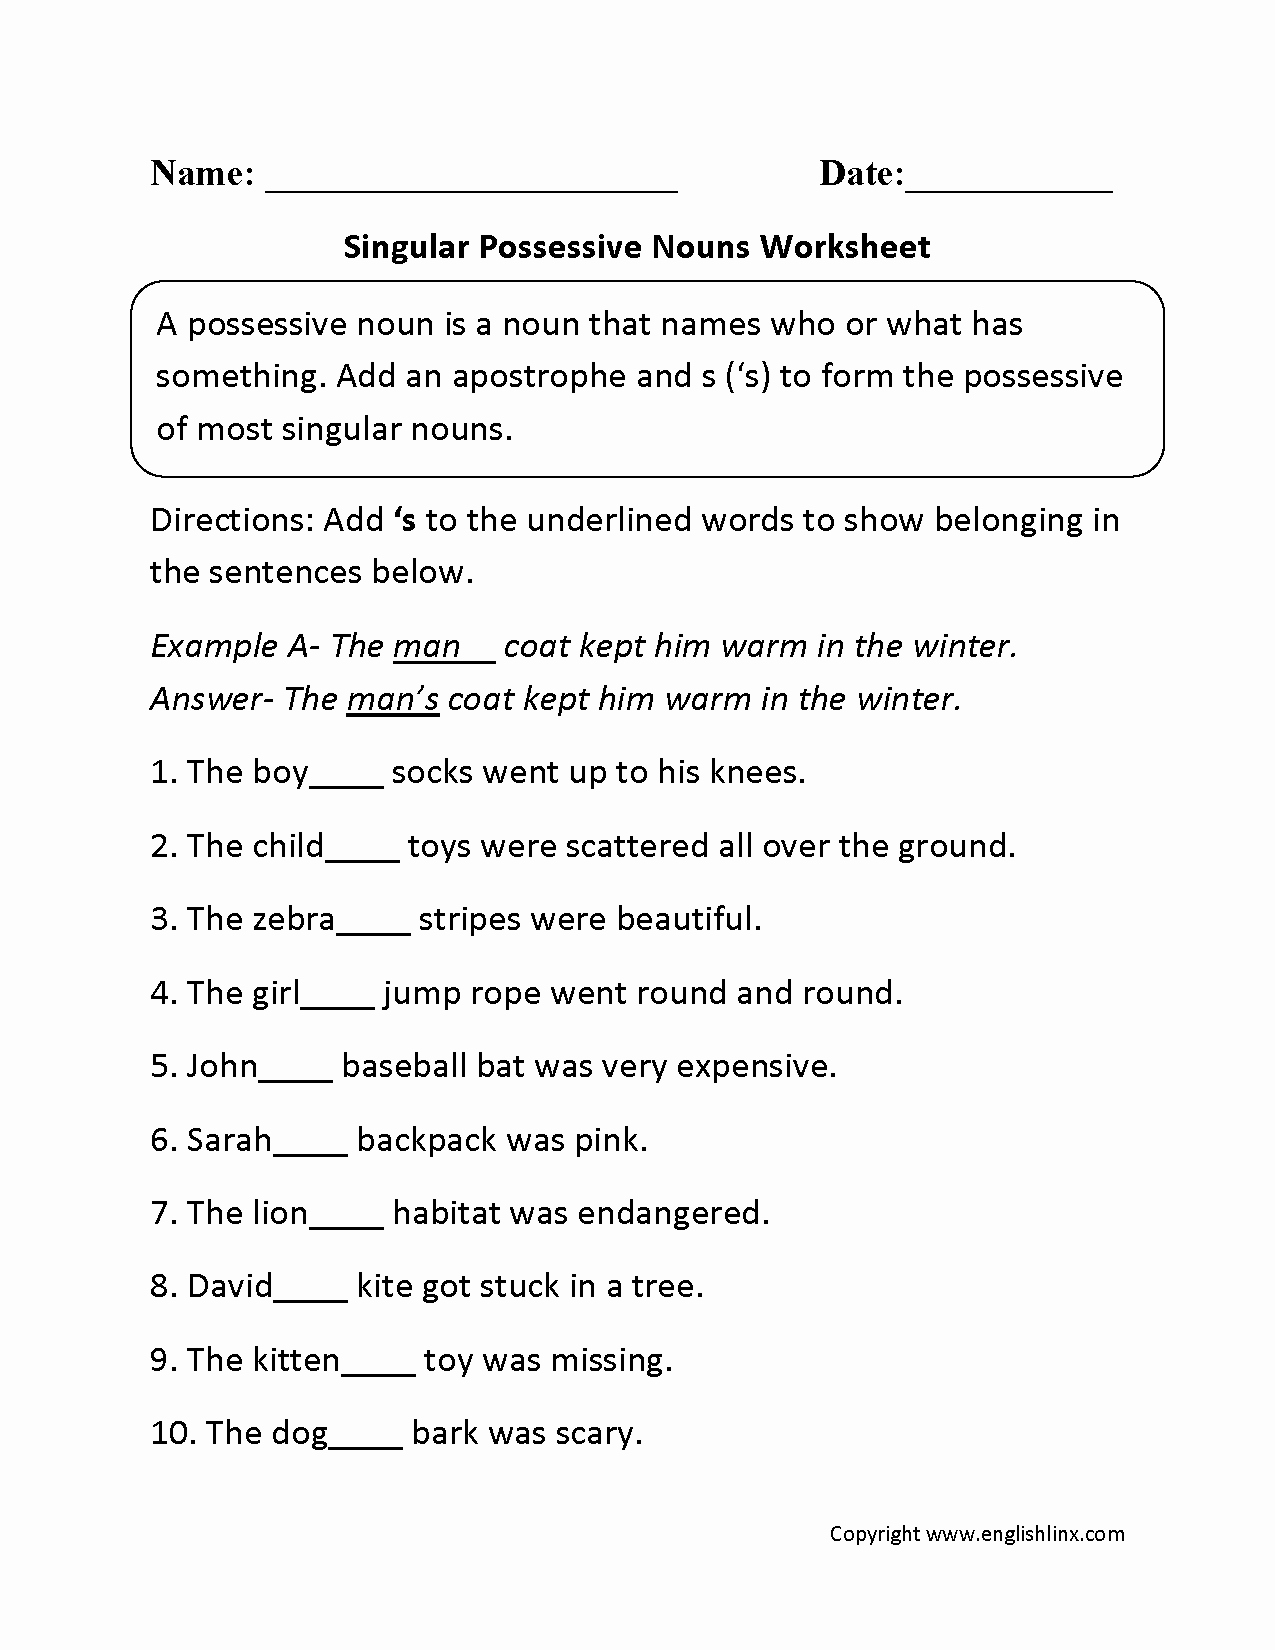 Singular Possessive Nouns Worksheet Unique Singular Possessive Nouns Worksheets